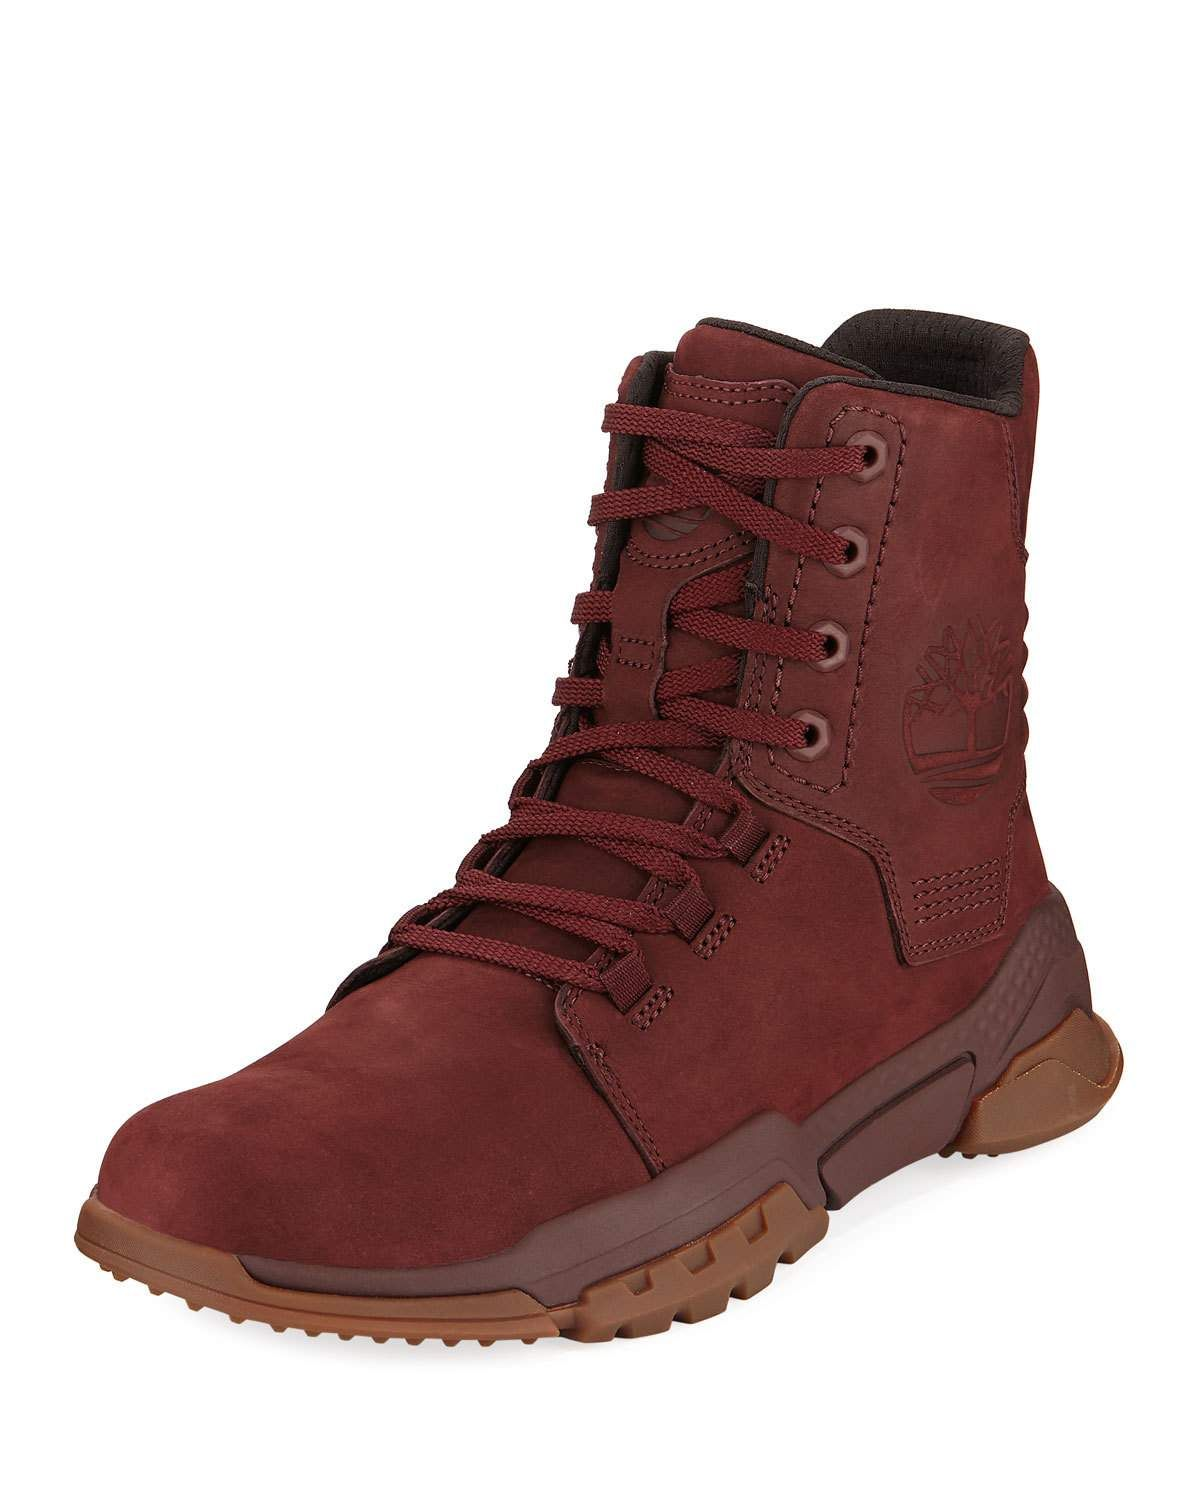 c7a457d6b32 TIMBERLAND MEN'S CITY FORCE REVEAL LEATHER BOOTS, RED. #timberland ...